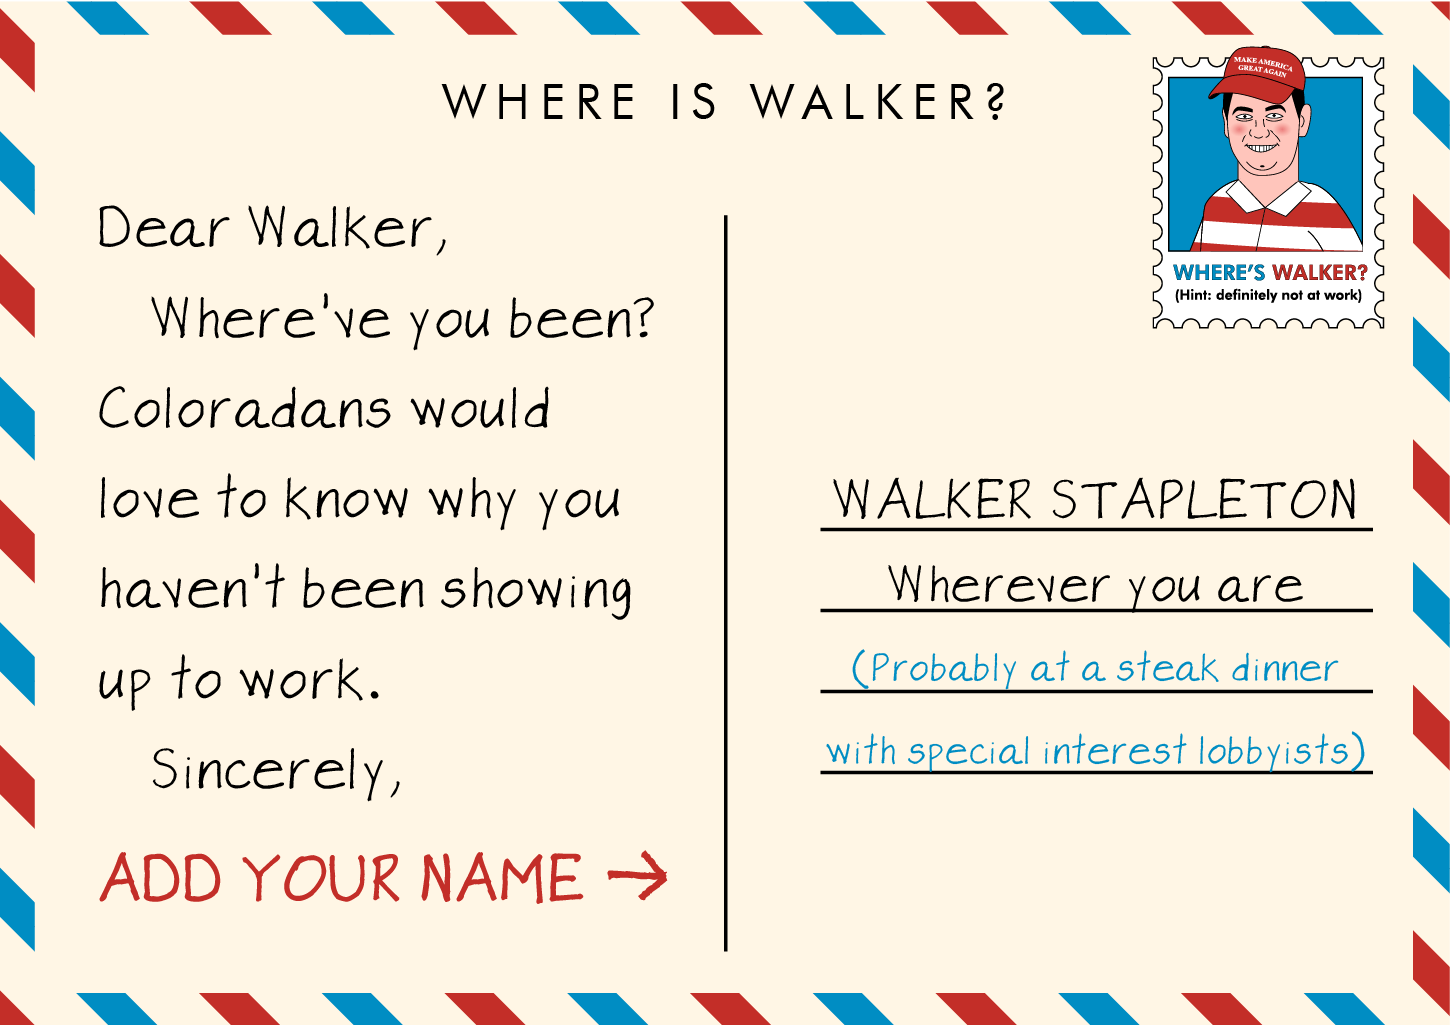 Walker Stapleton doesn't show up to work